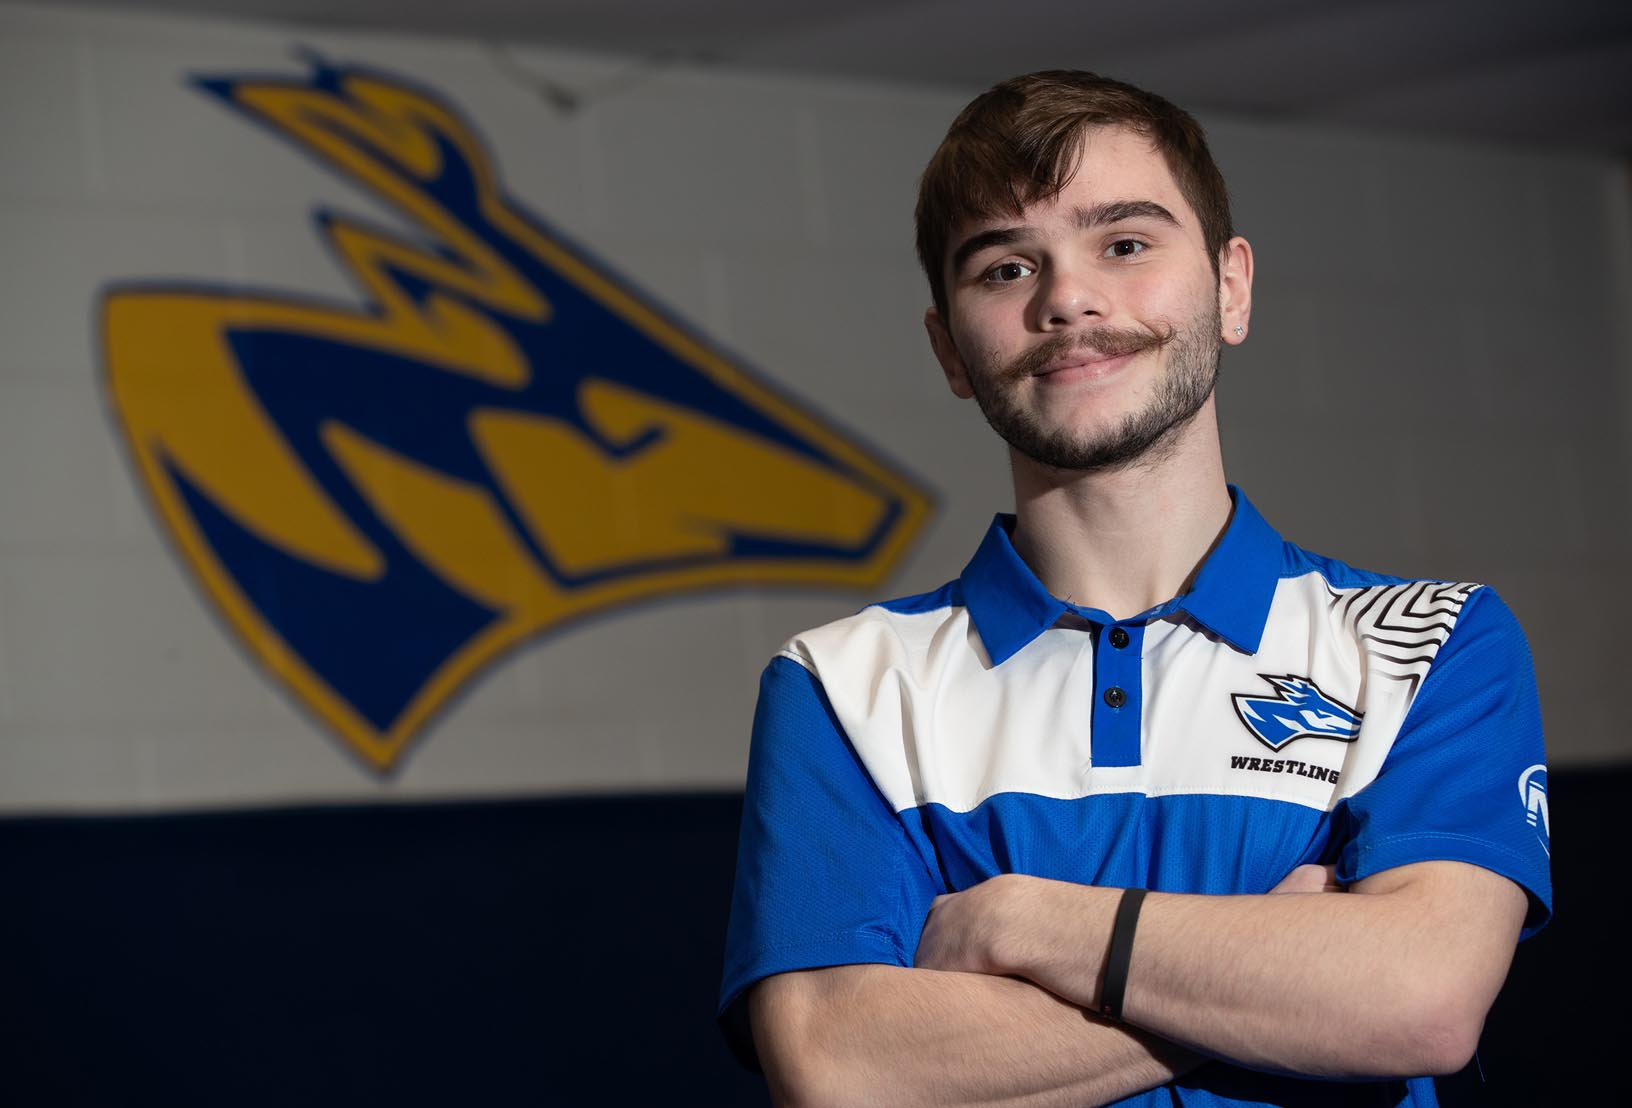 UNK wrestler Josh Portillo sets a high standard in both athletics and academics. He's currently ranked seventh in Division II at 125 pounds and he maintains a 3.98 GPA while studying health and physical education. (Photo by Corbey R. Dorsey, UNK Communications)